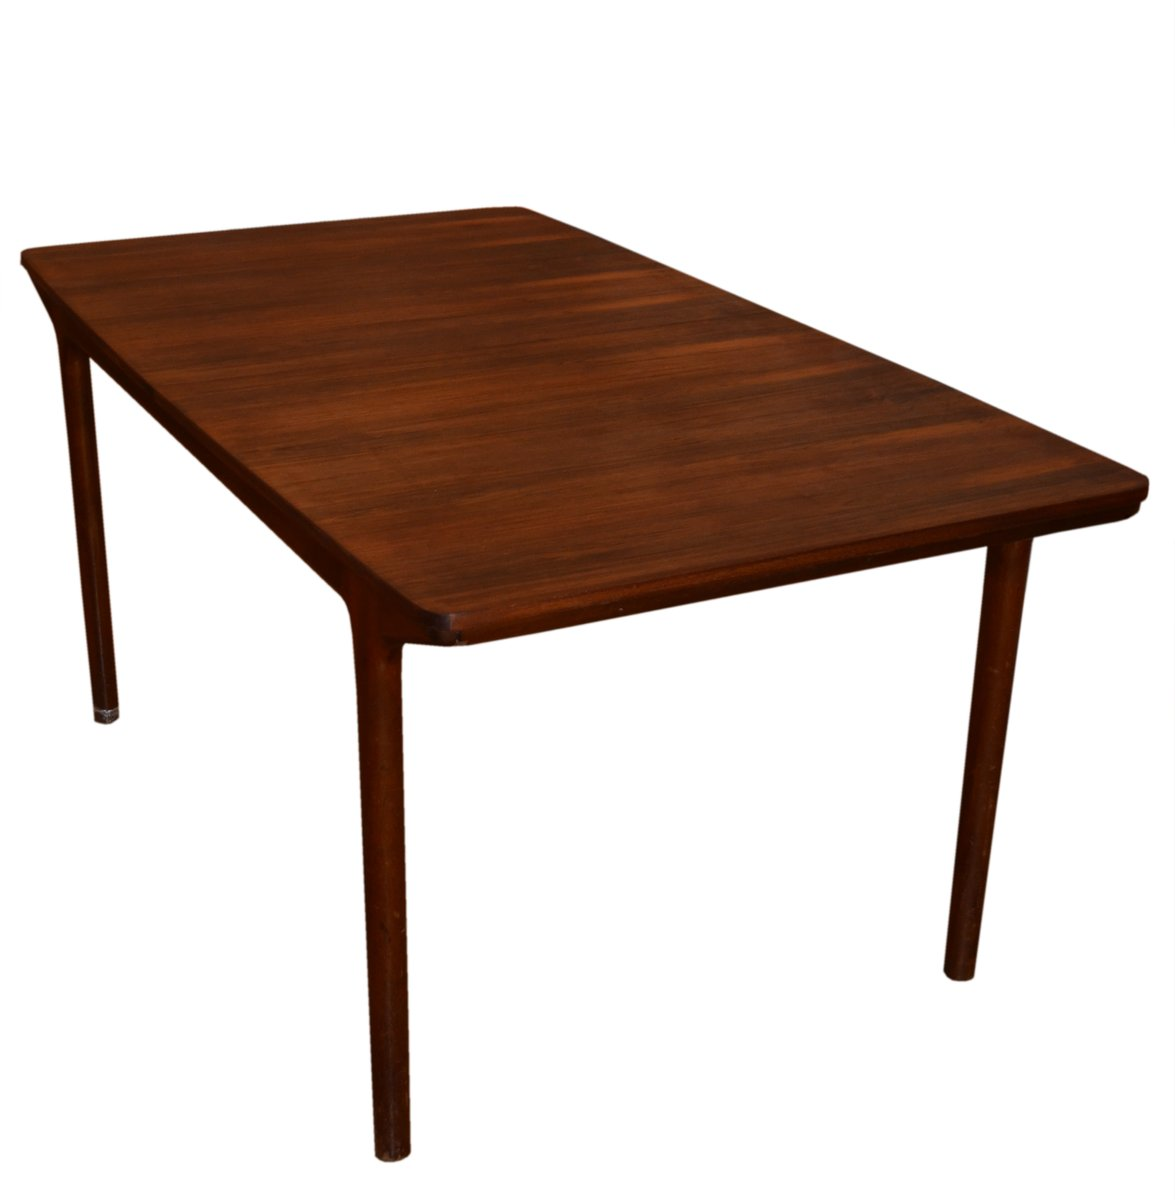 Grande table de salle manger rallonge mid century 12 for Grande table a rallonge